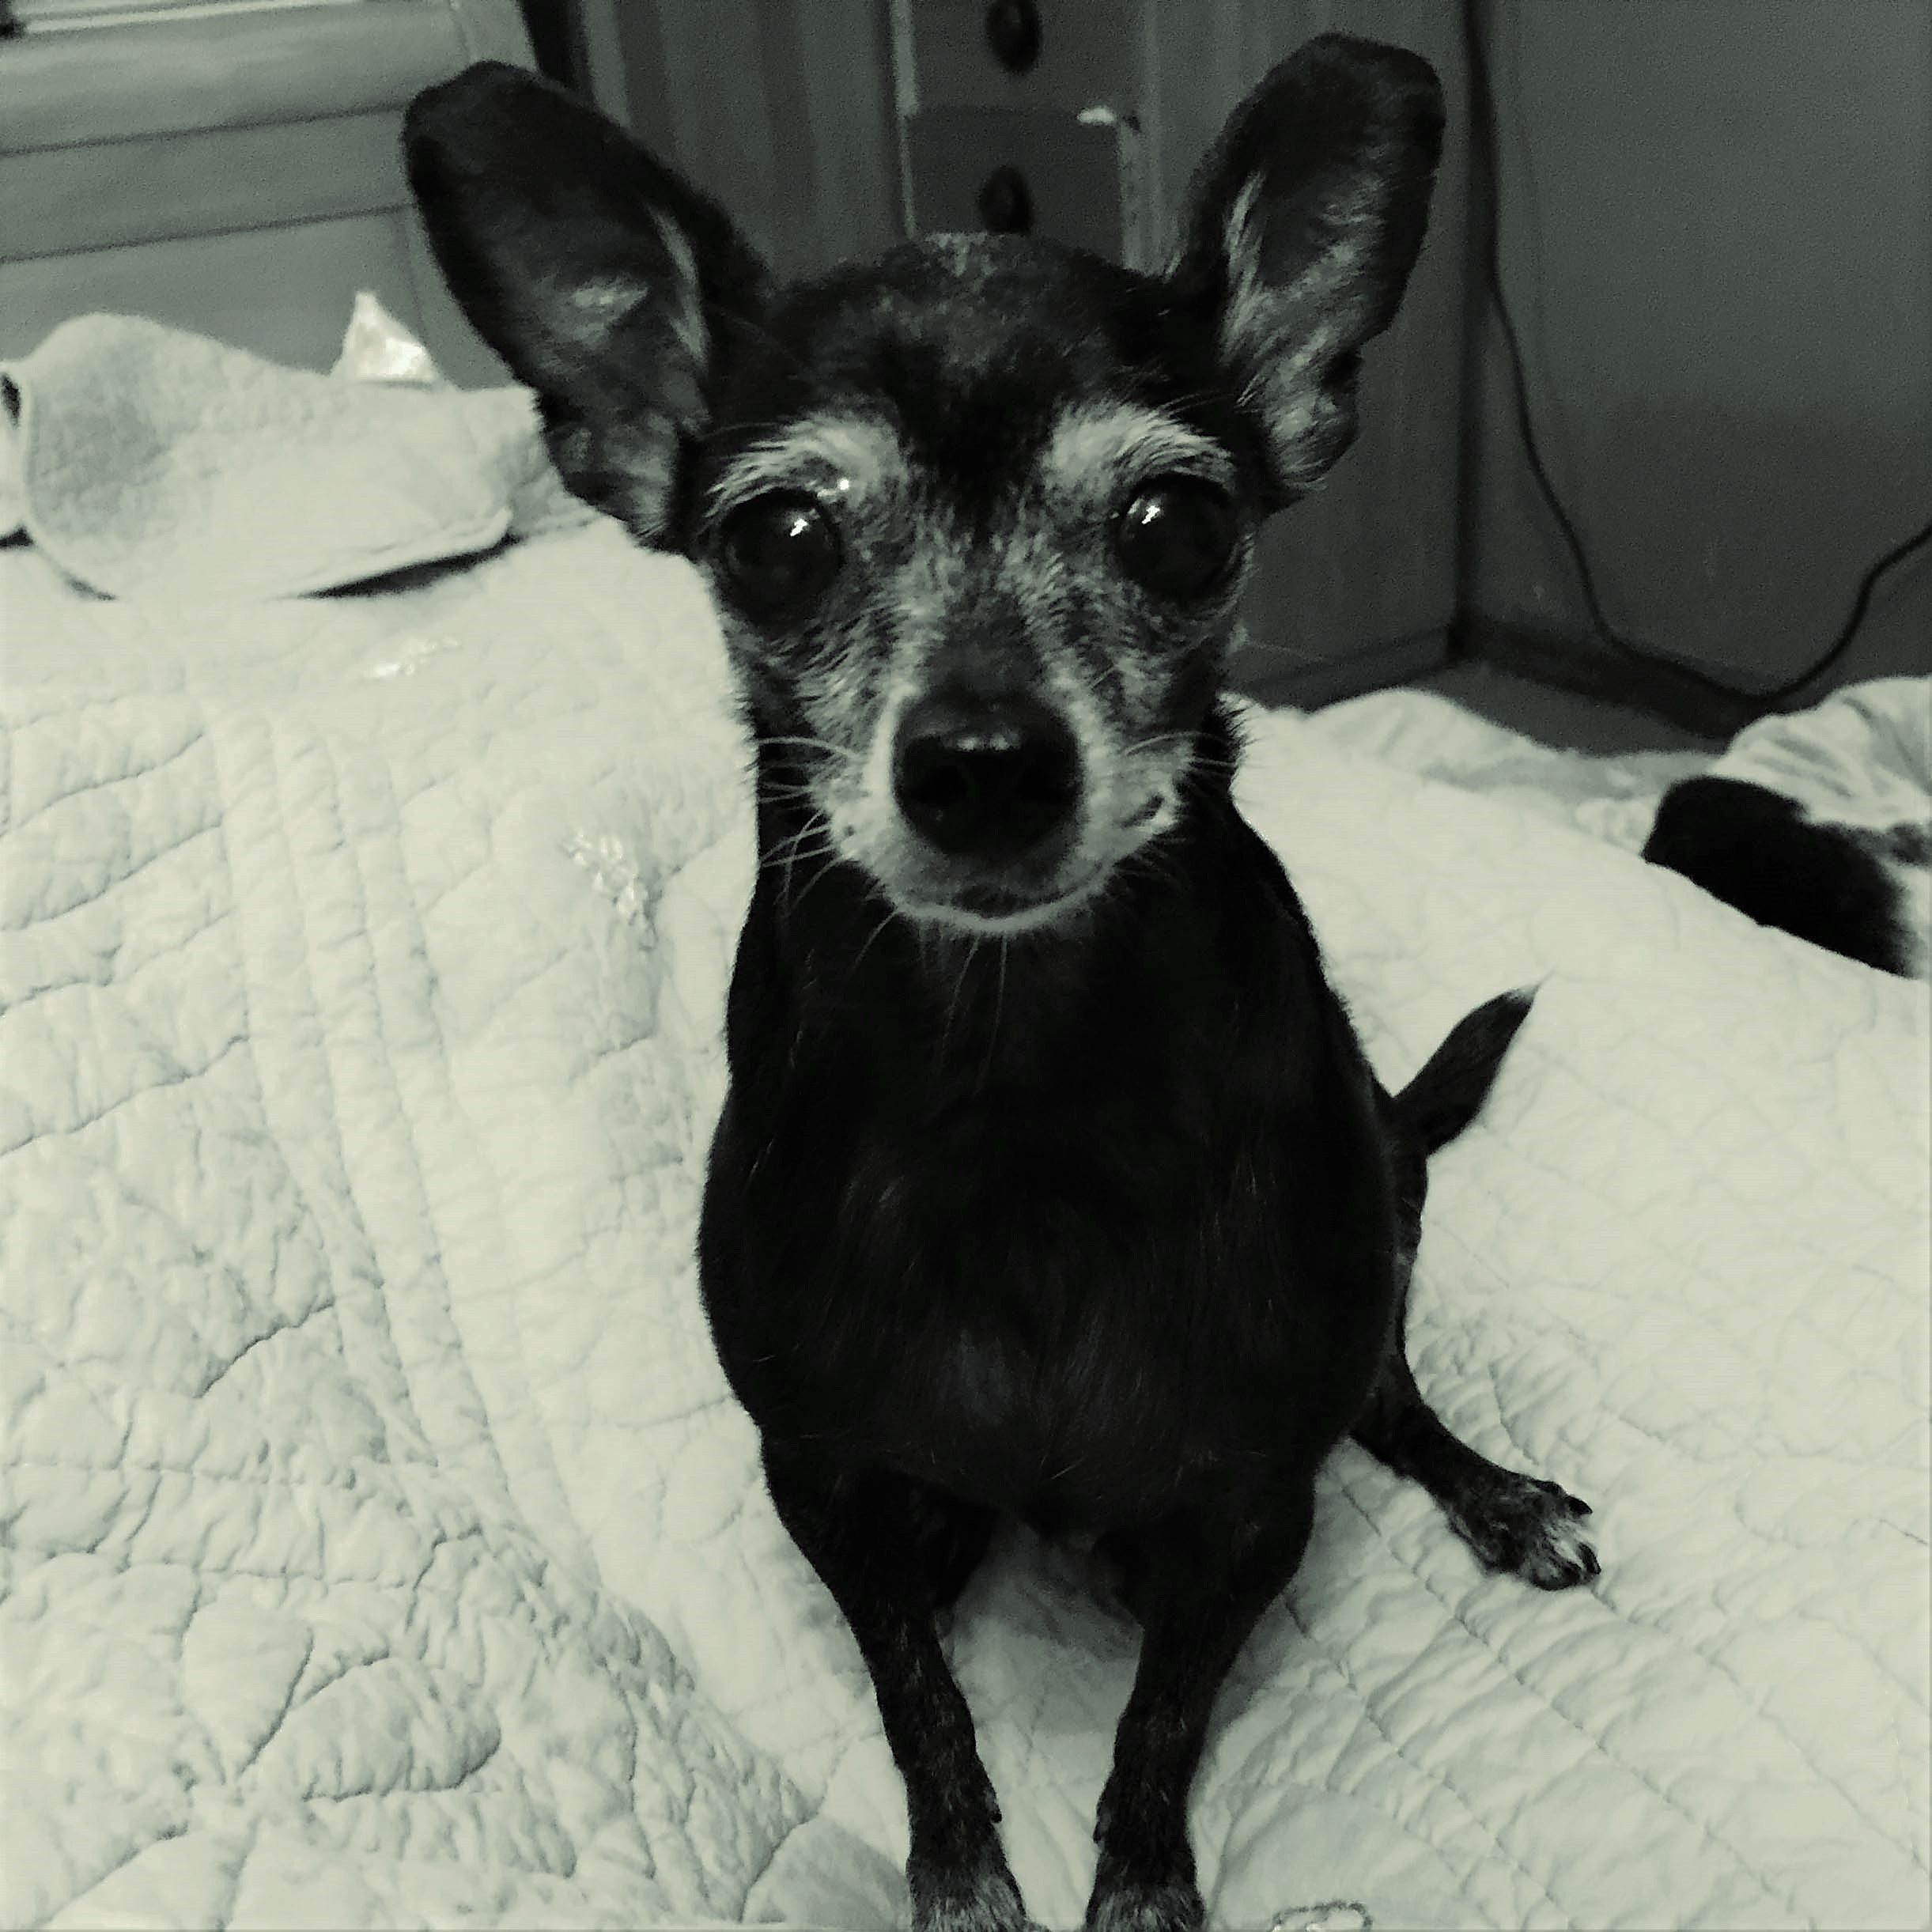 Ludi - 18-years-oldLudi was a three pound feisty little chi.She came to us with a huge mammary tumor.She loved to guard her food. She didn't like to eat nearly as much as guarding her food.She had a larger-than-life personality and is greatly missed.